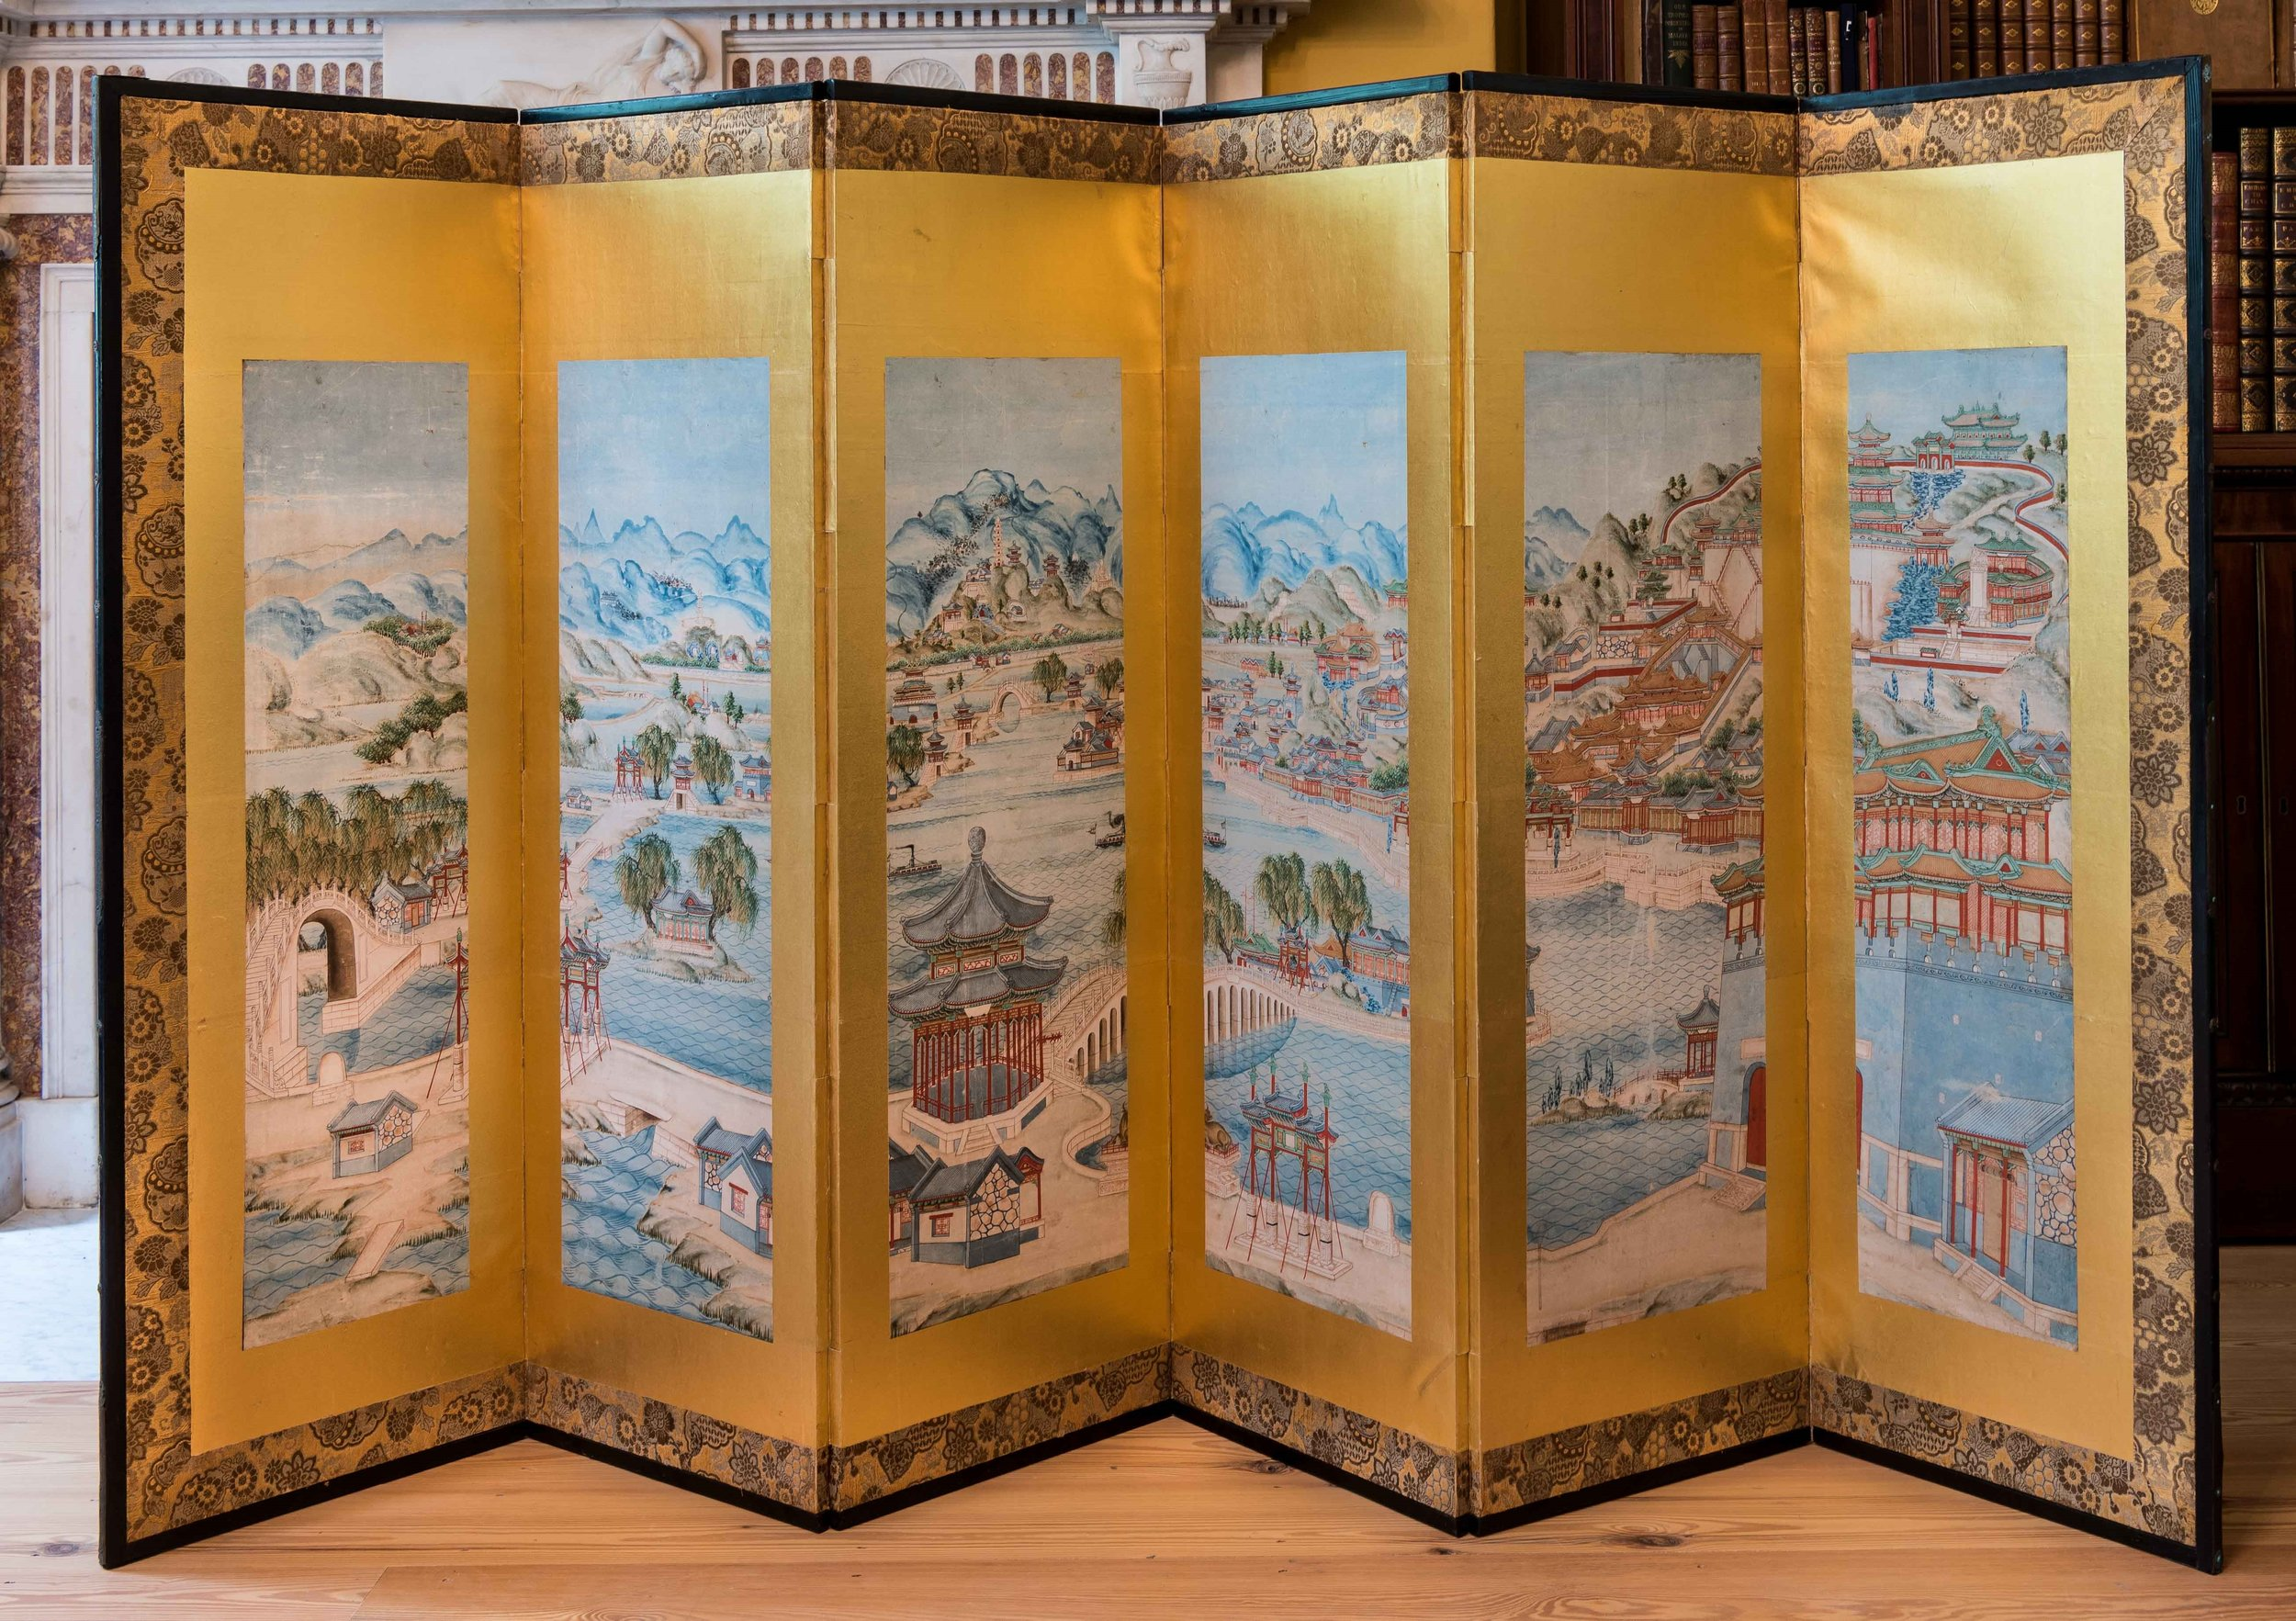 Unknown Chinese artist. Six-fold Screen with view of the Yihe-yuan Imperial Summer Palace, Beijing, circa 1890s